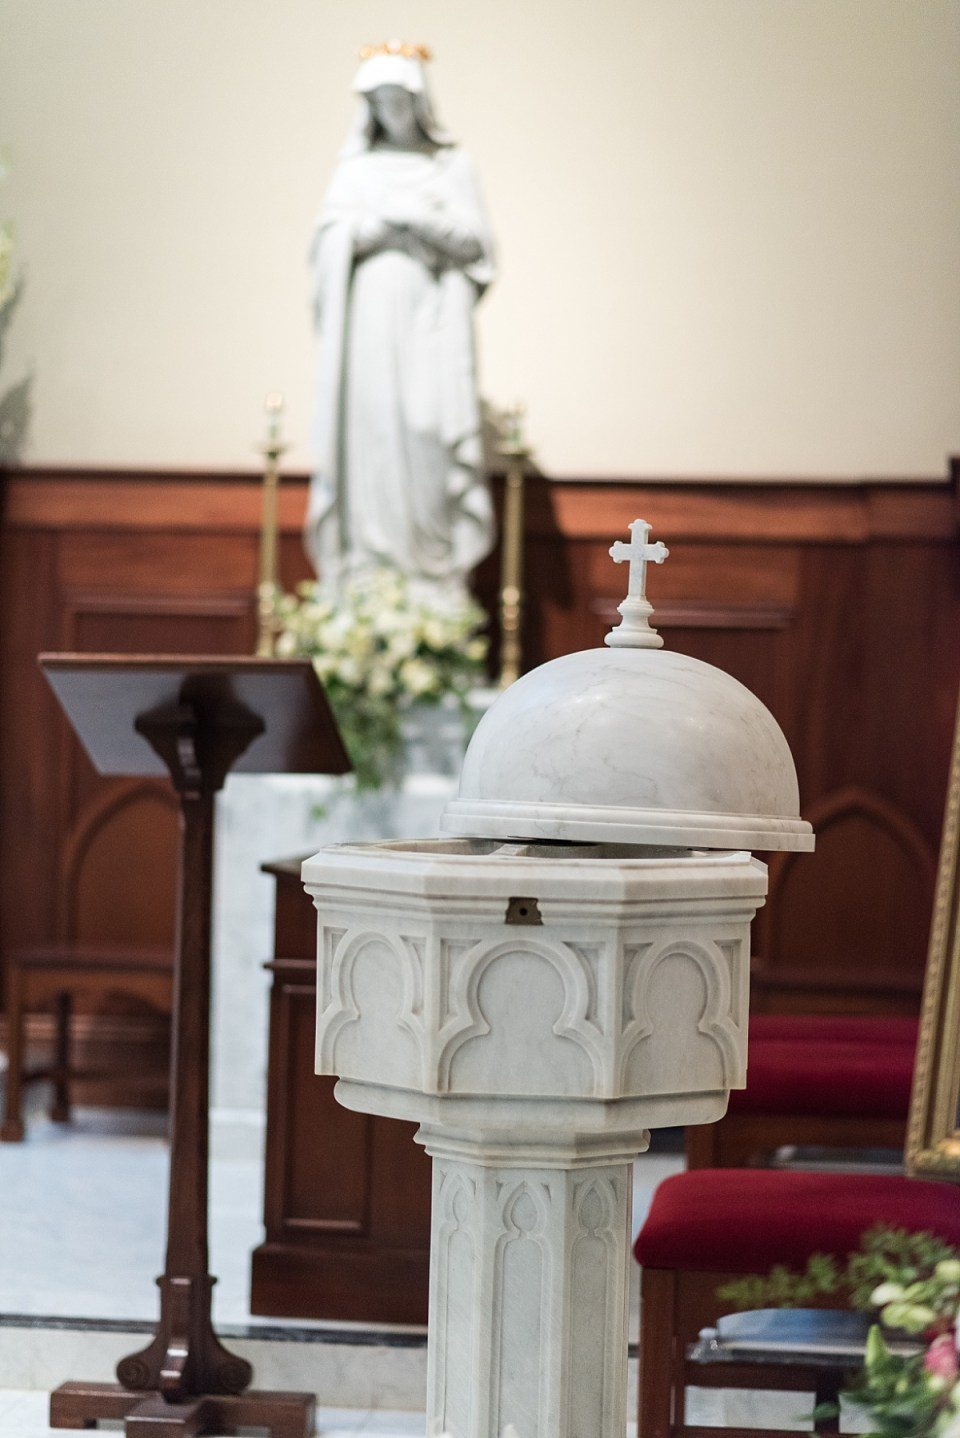 Baptism Font at St. Mary's Bascilica in Alexandria, VA